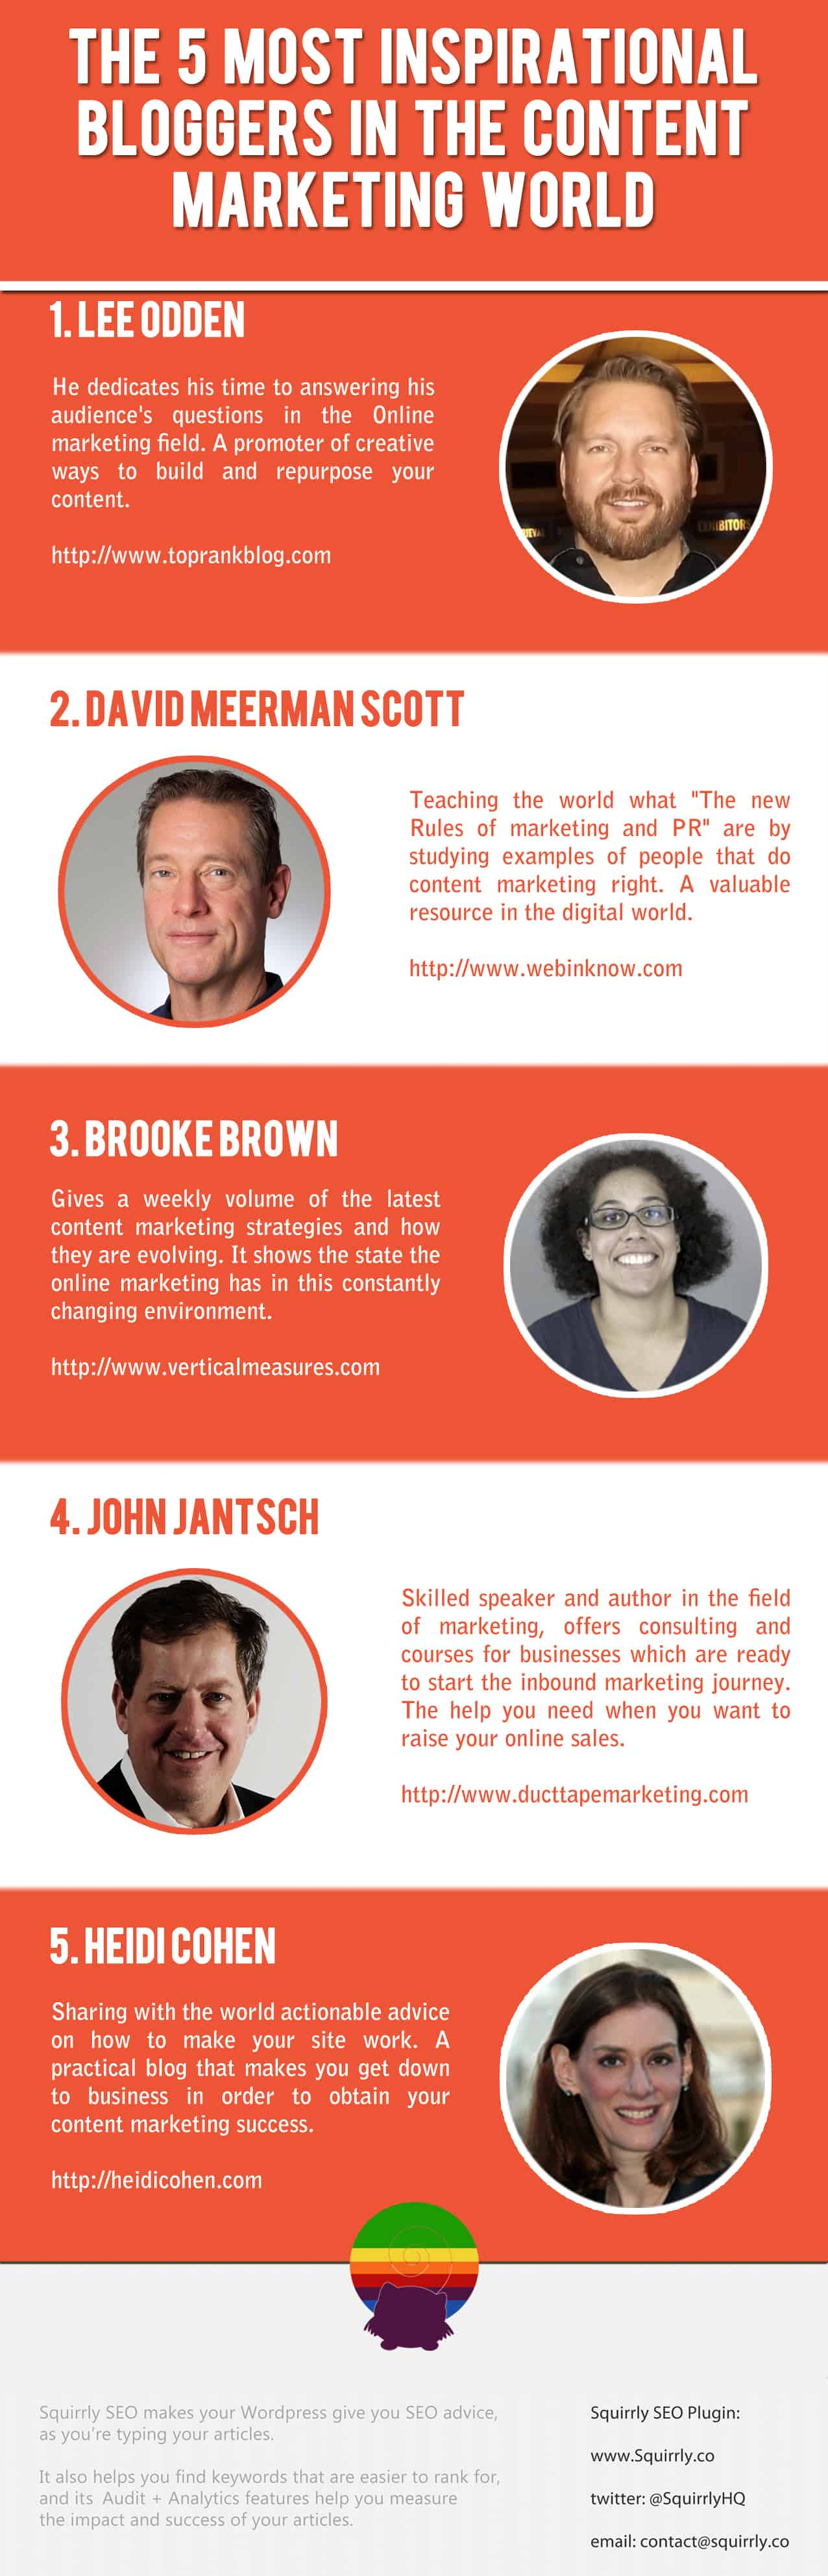 5 most inspirational bloggers in content marketing world